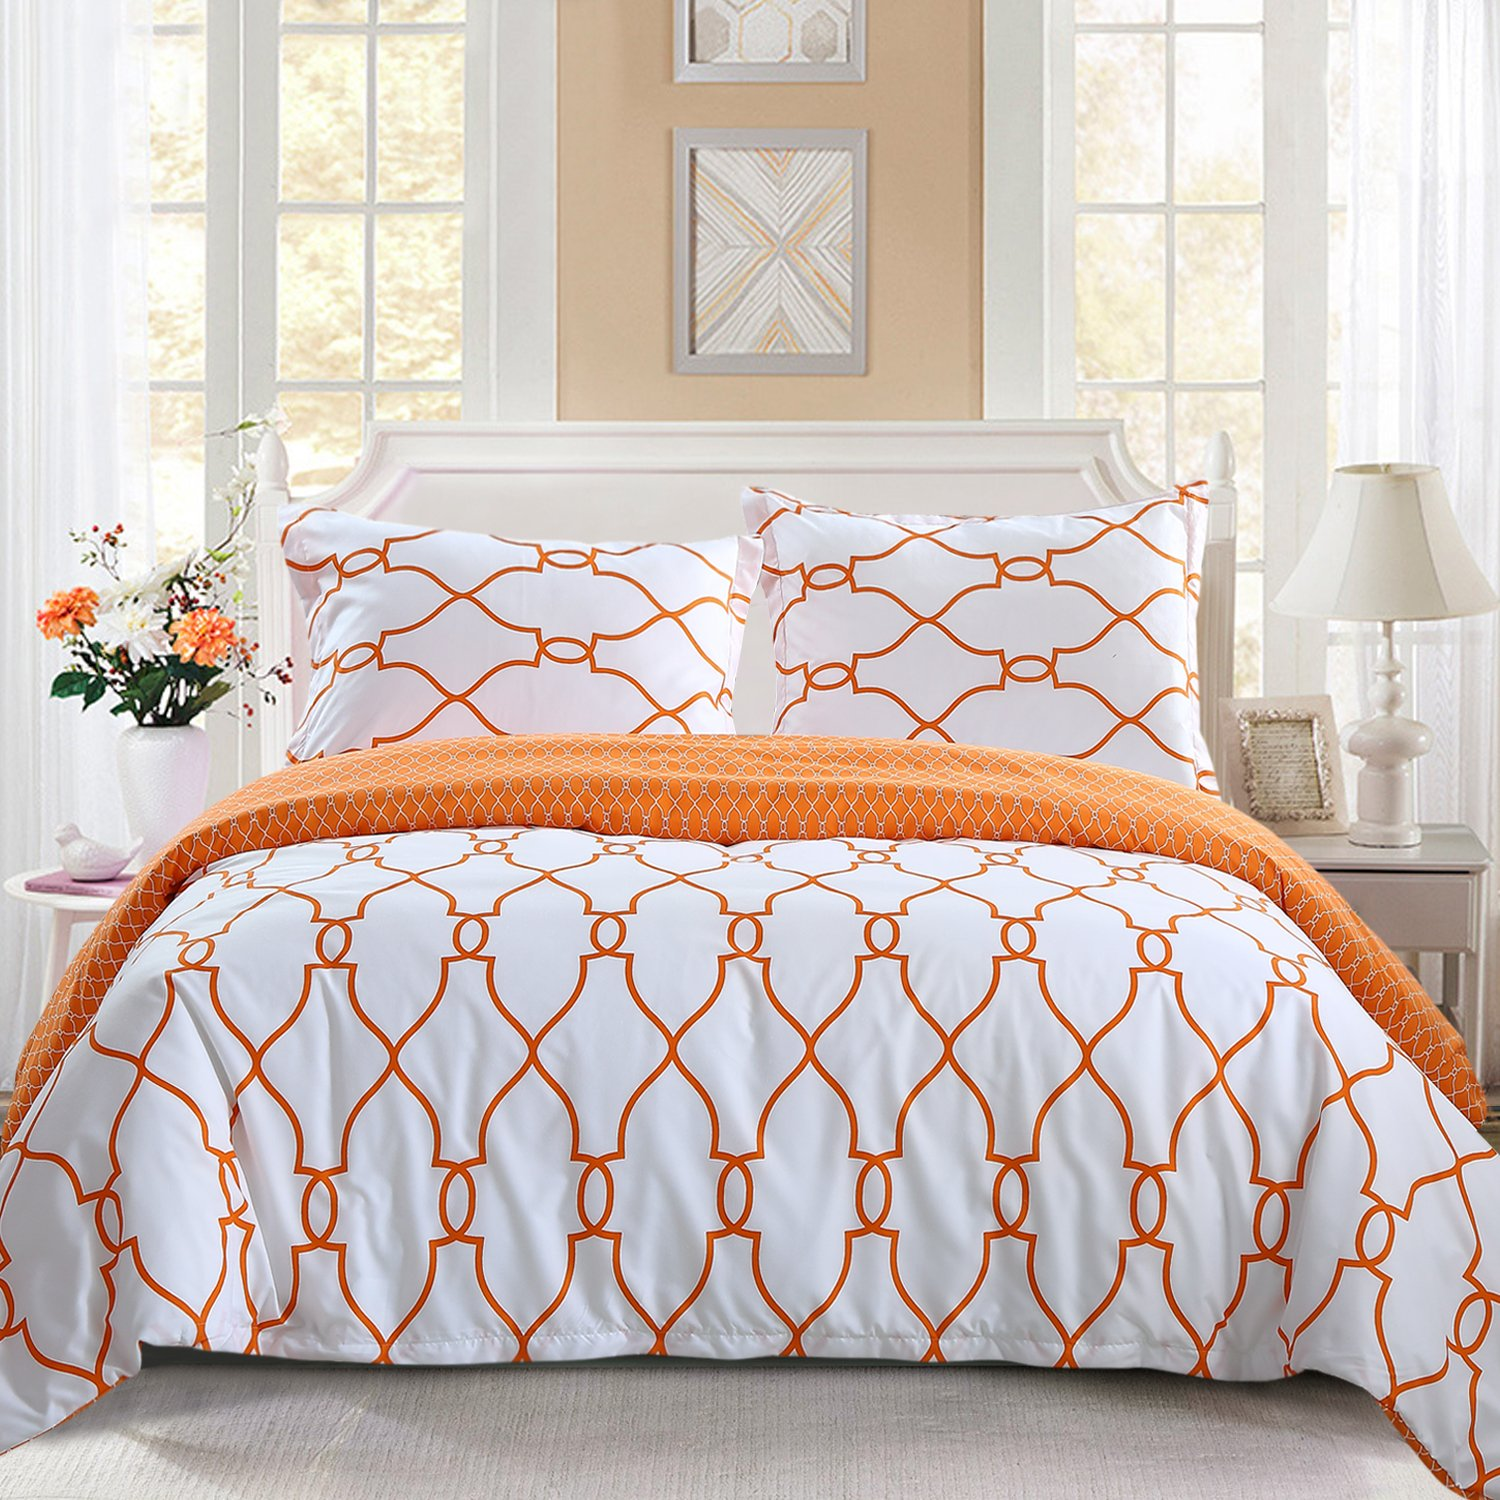 flat fitted covers loraine edge shams mercerized and on closure for zipper egyptian knife with pricing cover combed duvet cotton sheets inquire pure print pin